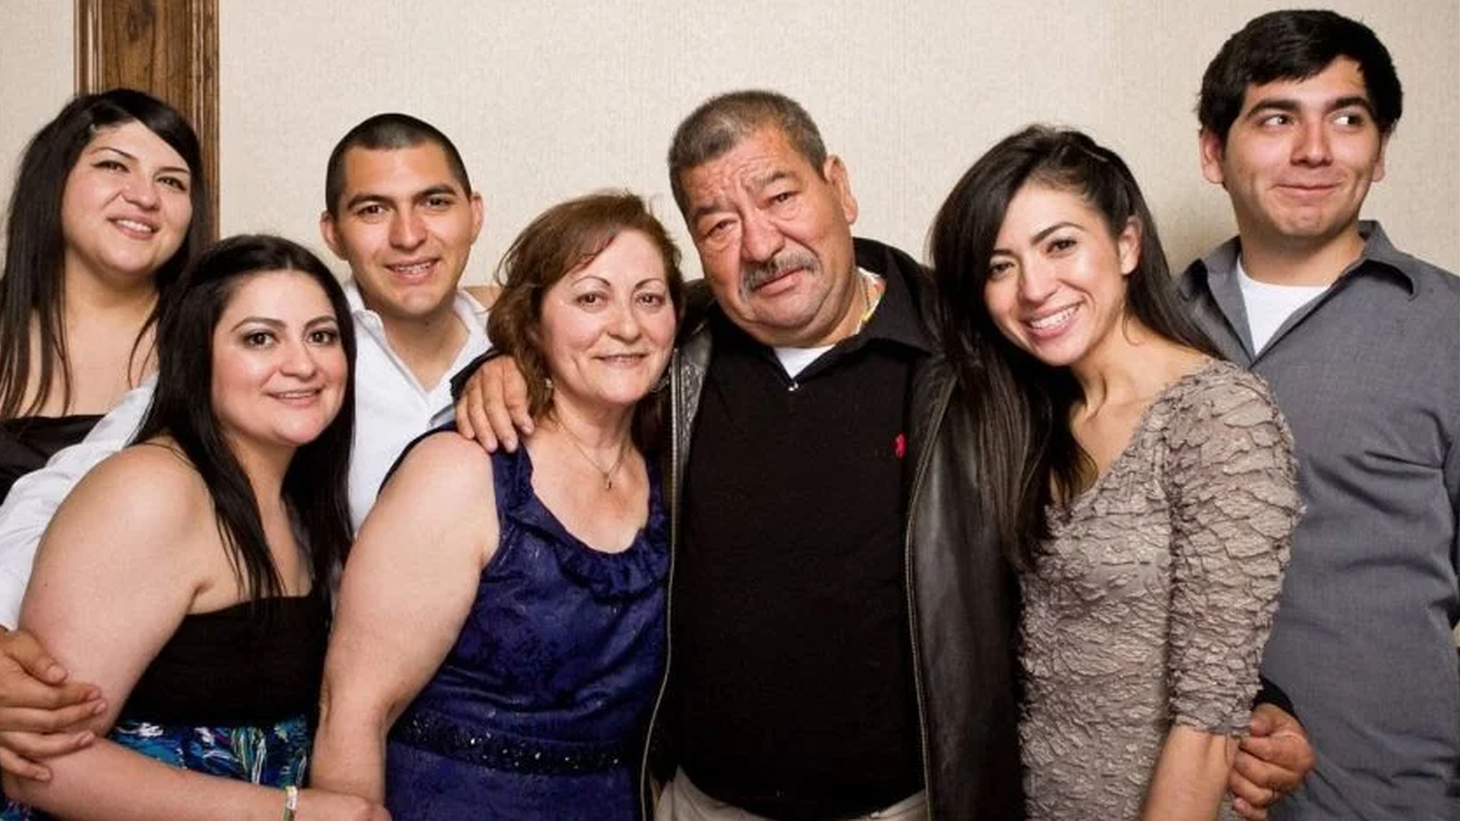 Francisco Ramirez (center) and his family. From left: Mavel, Monica, Francisco Jr., his wife Amalia, Mayra Rodriguez, and Edward.